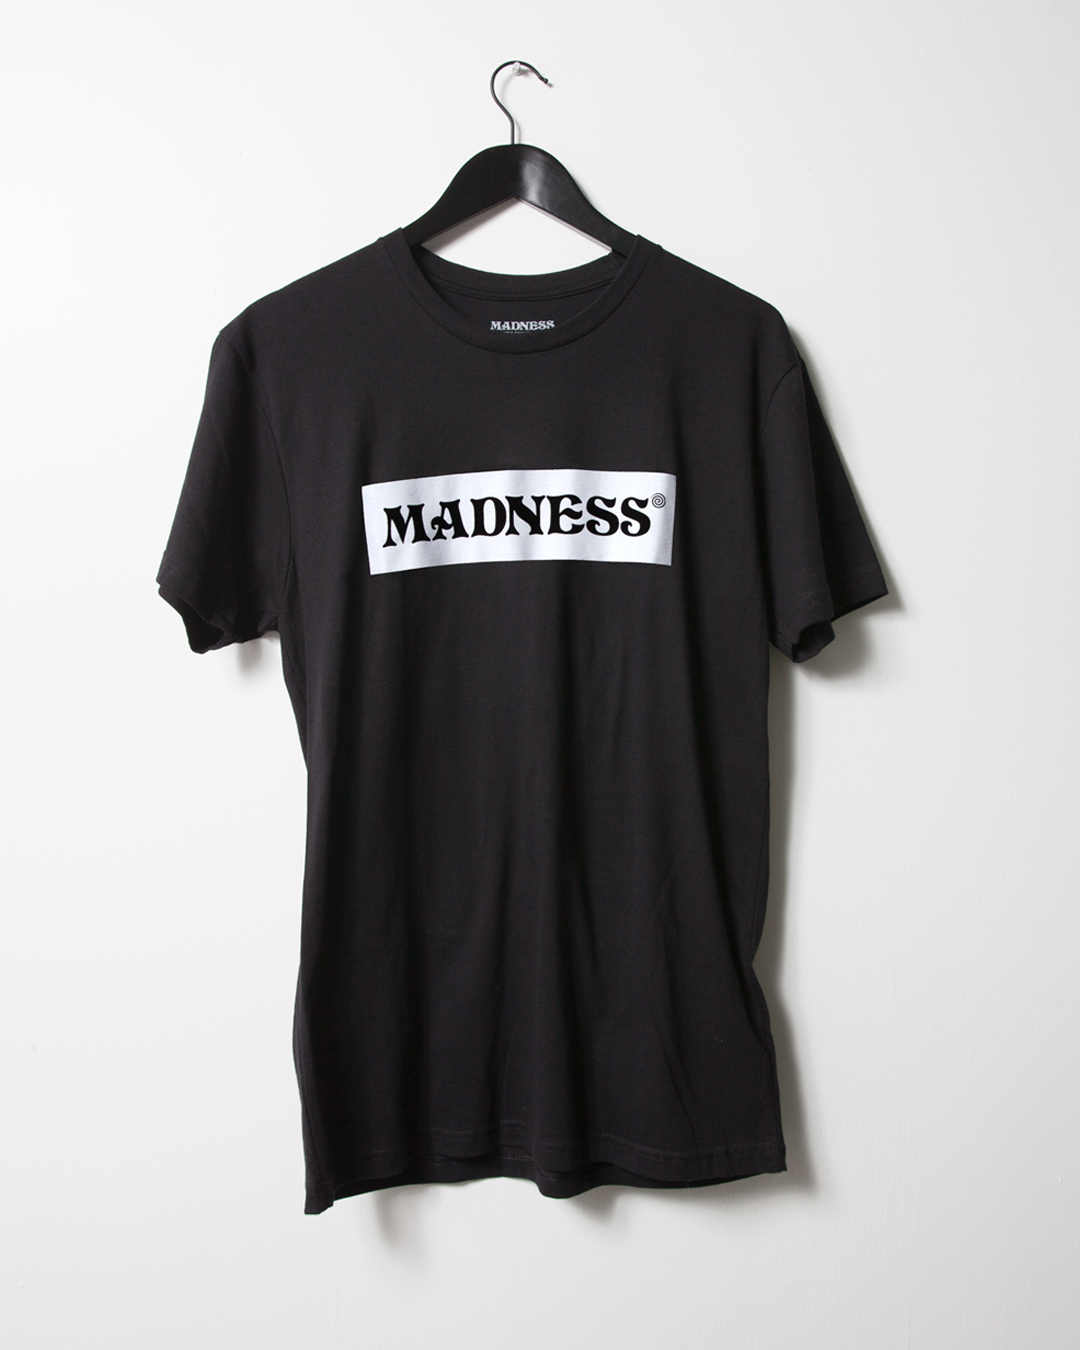 madness-skateboards-BAR-BLACK-FRONT-1350.jpg